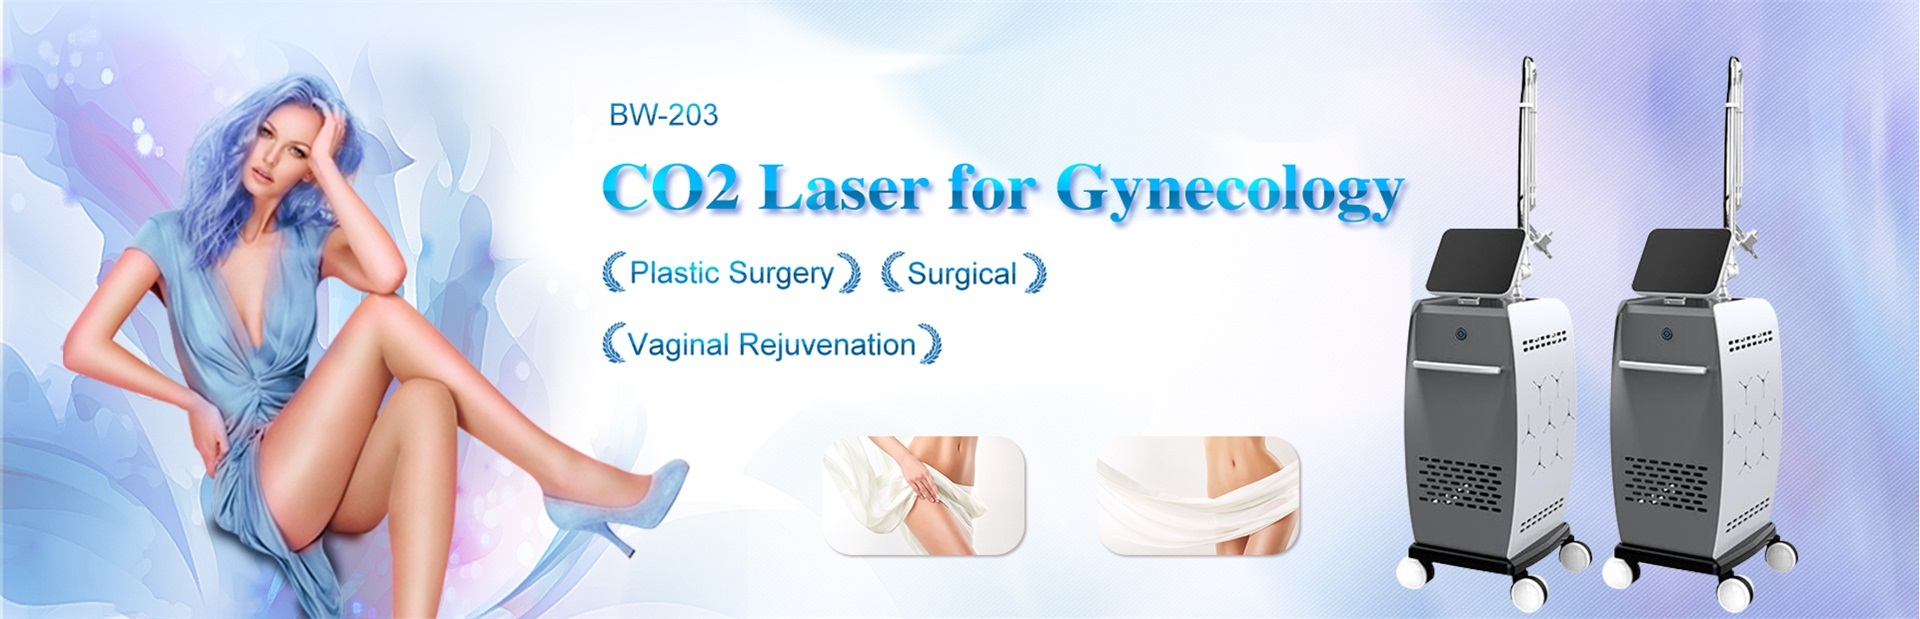 CO2 Laser For Gynecology Machine,